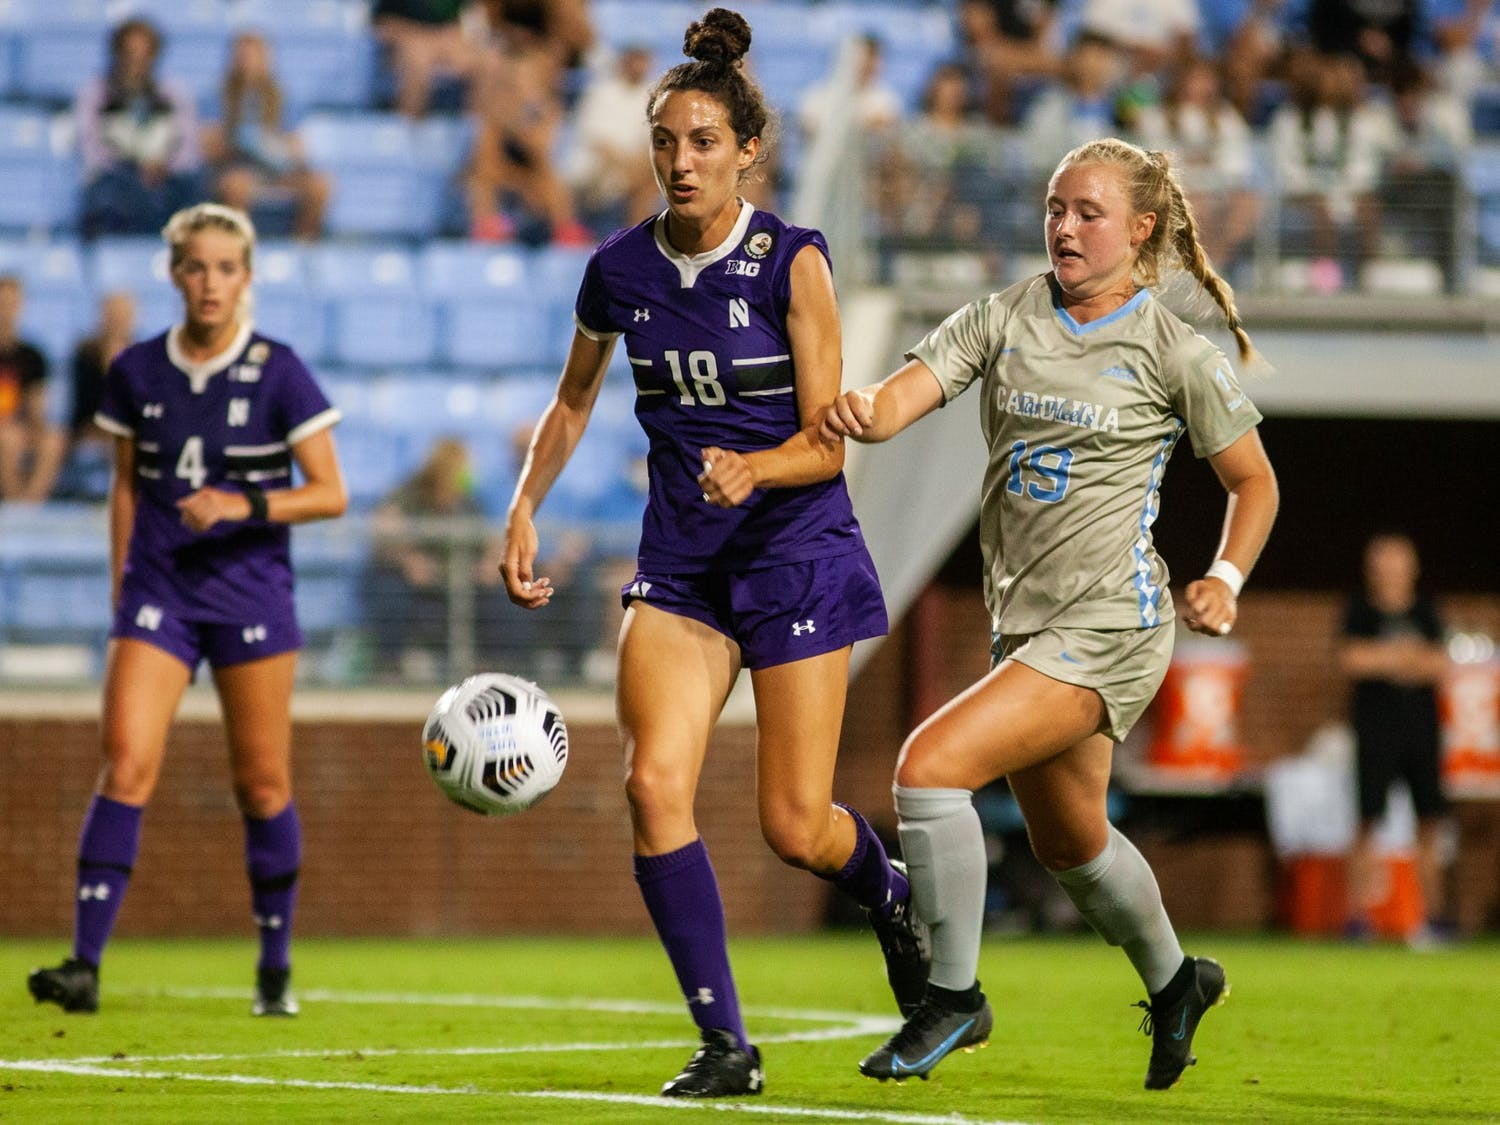 Freshman midfielder Emily Colton (19) fights for possession of the ball at the home game against Northwestern on Sept 2. UNC won 2-0.